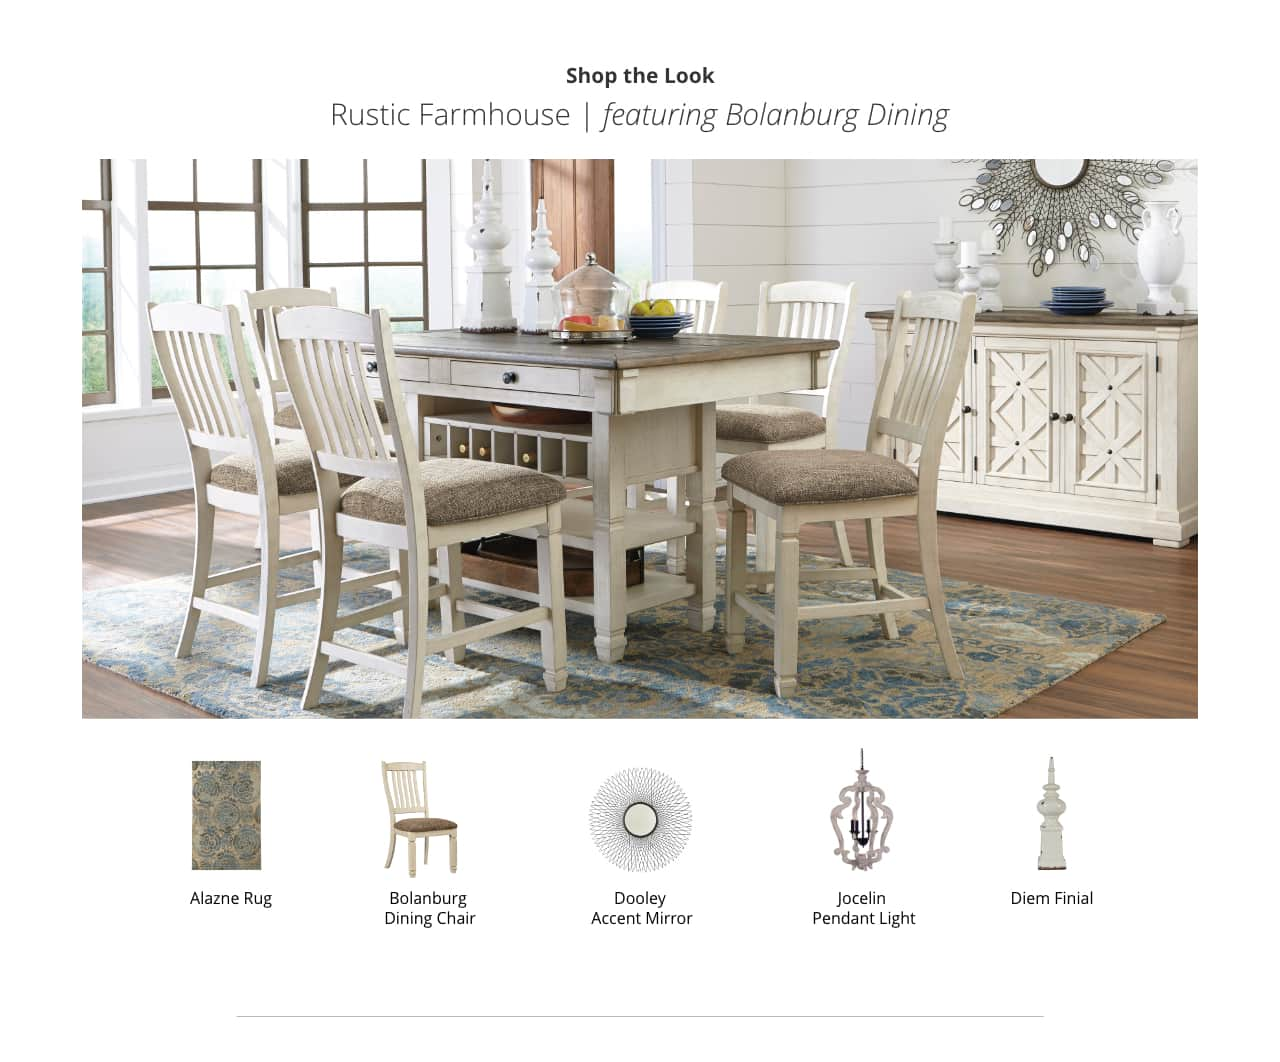 kitchen dining room furniture ashley home accent rustic farmhouse bolanburg small table target under round pedestal side external door threshold moroccan brass hairpin legs